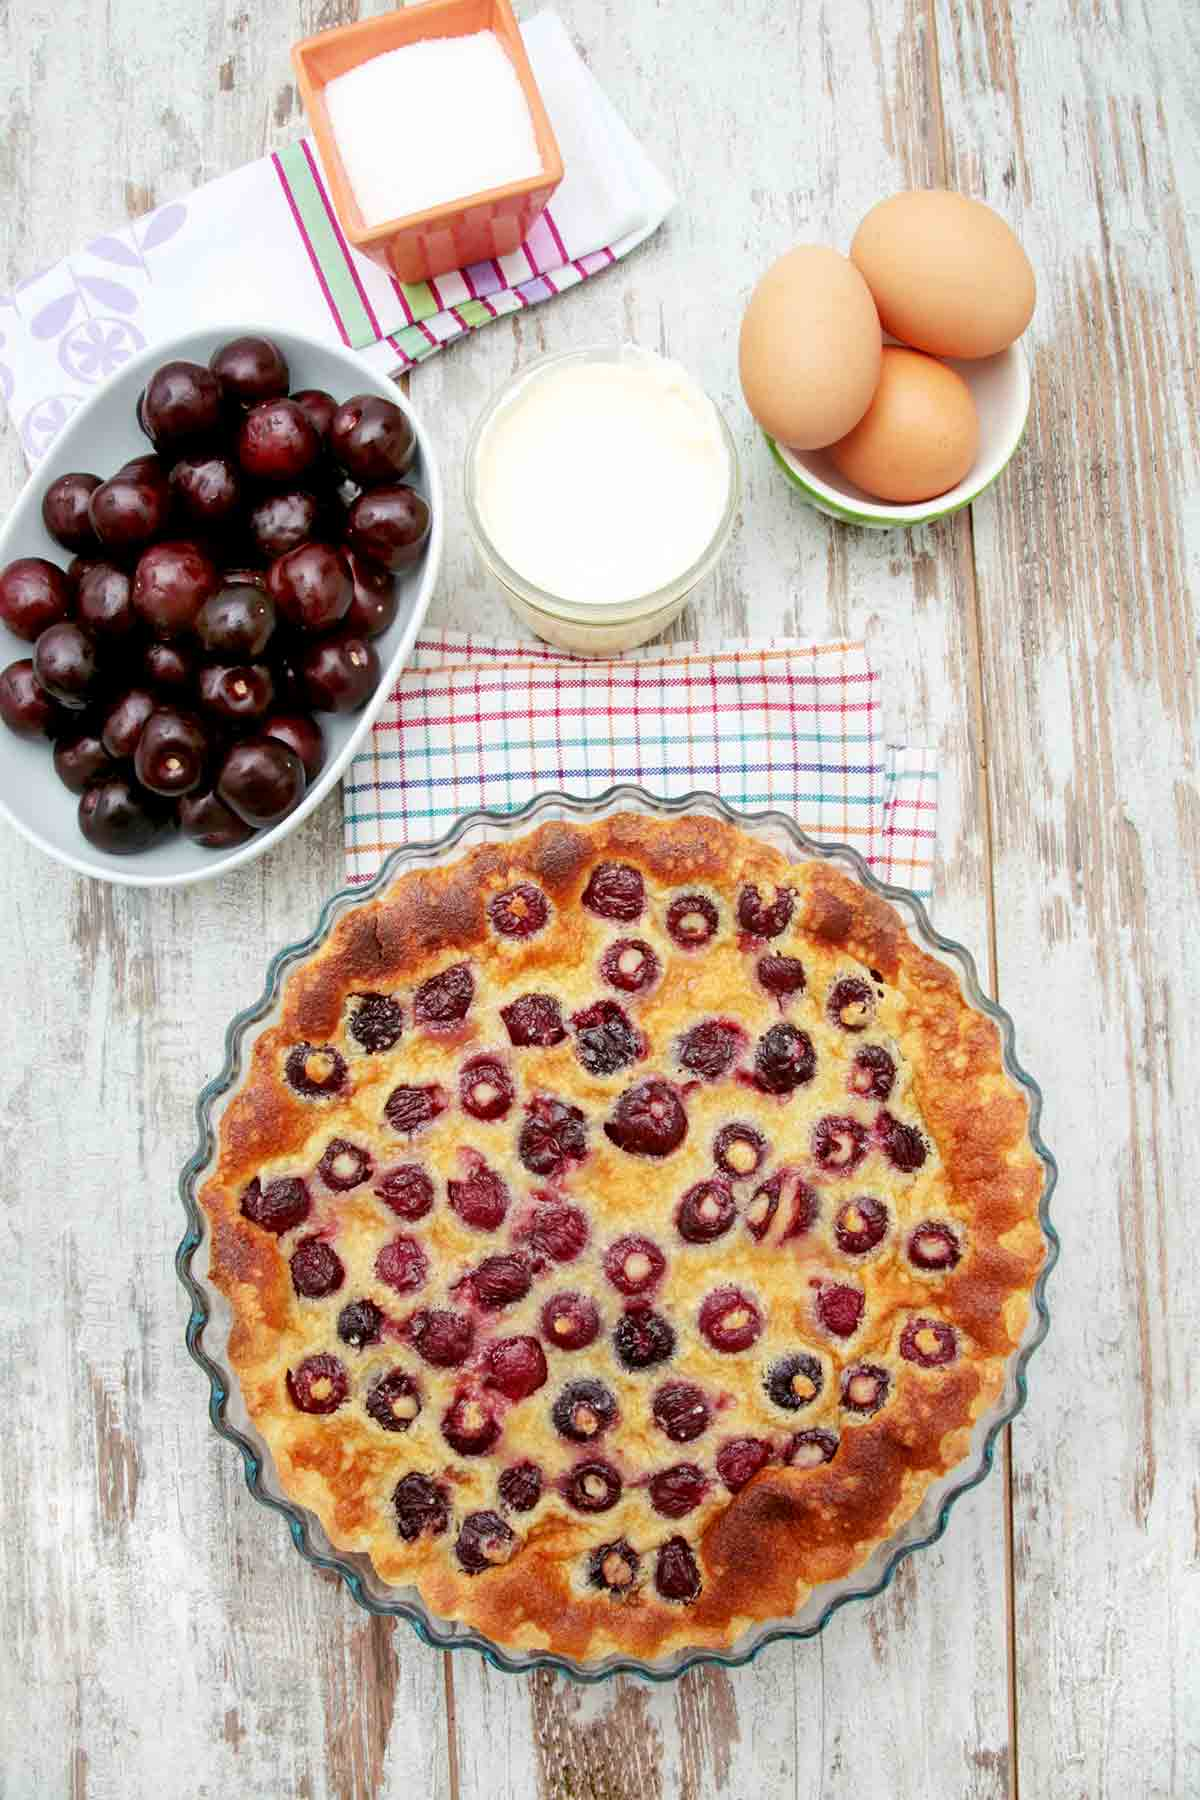 A cherry clafouti and dishes of cherries, eggs, milk, and sugar.